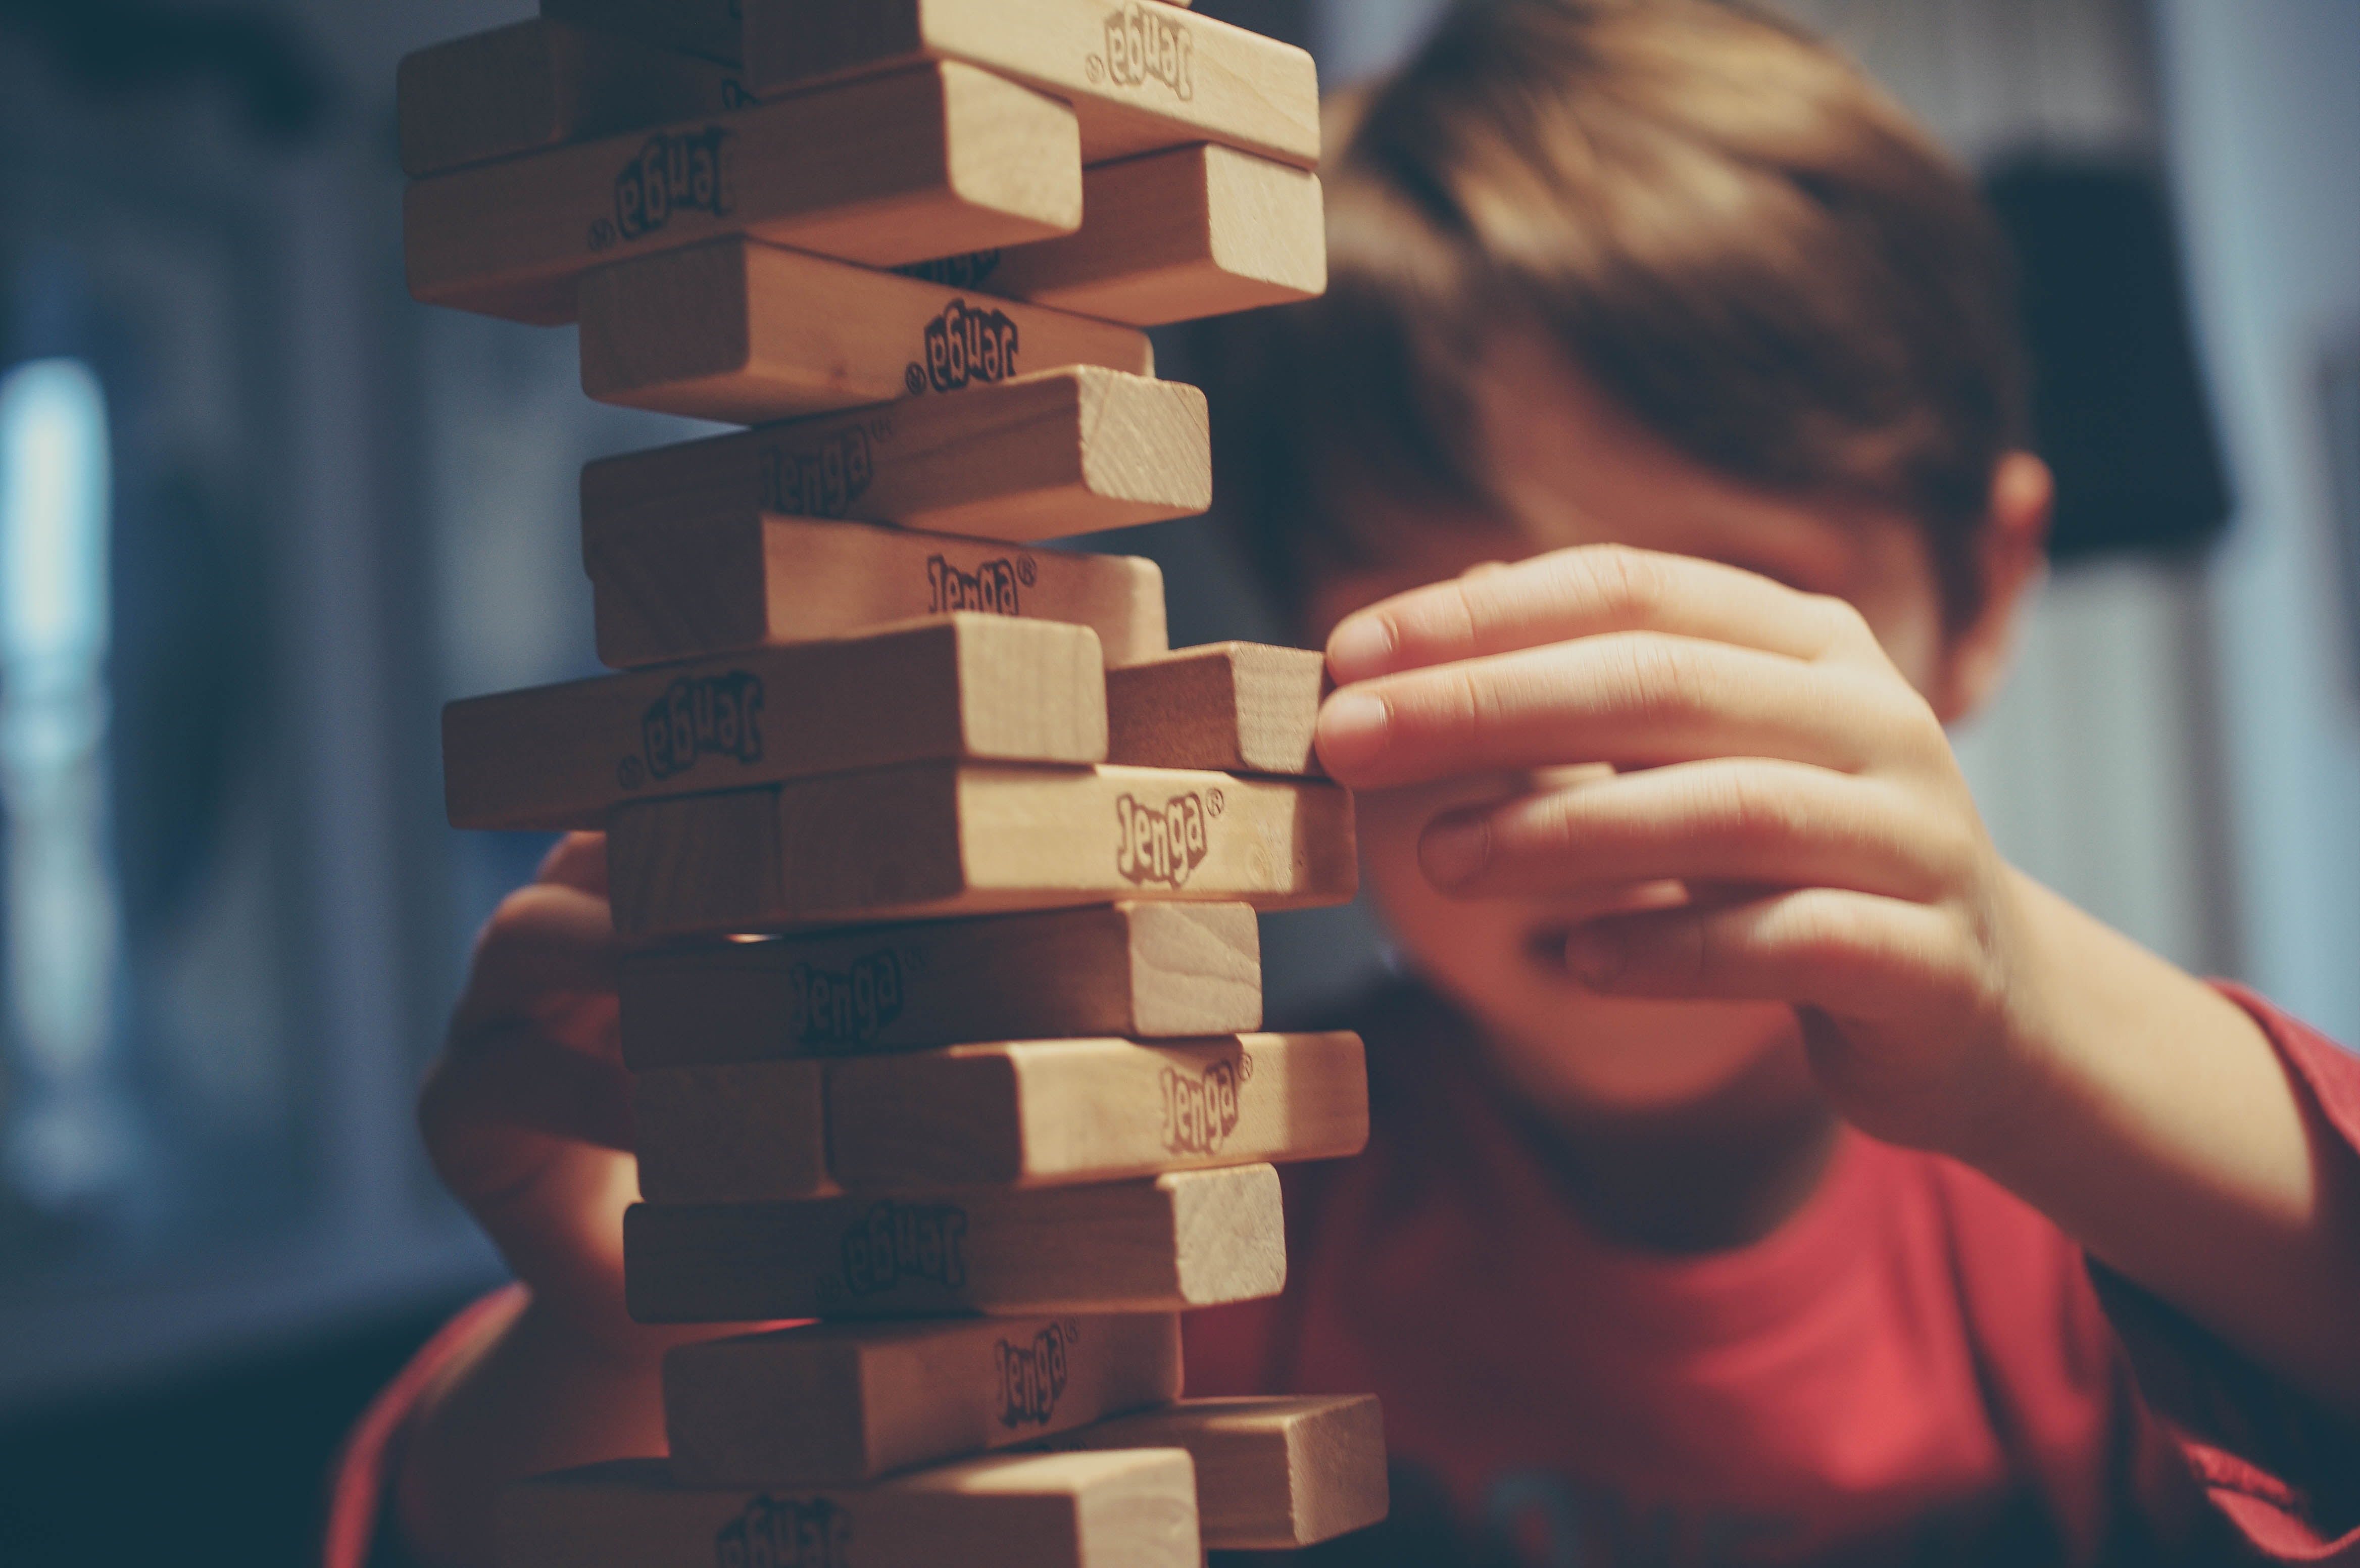 A child playing with a Jenga block tower